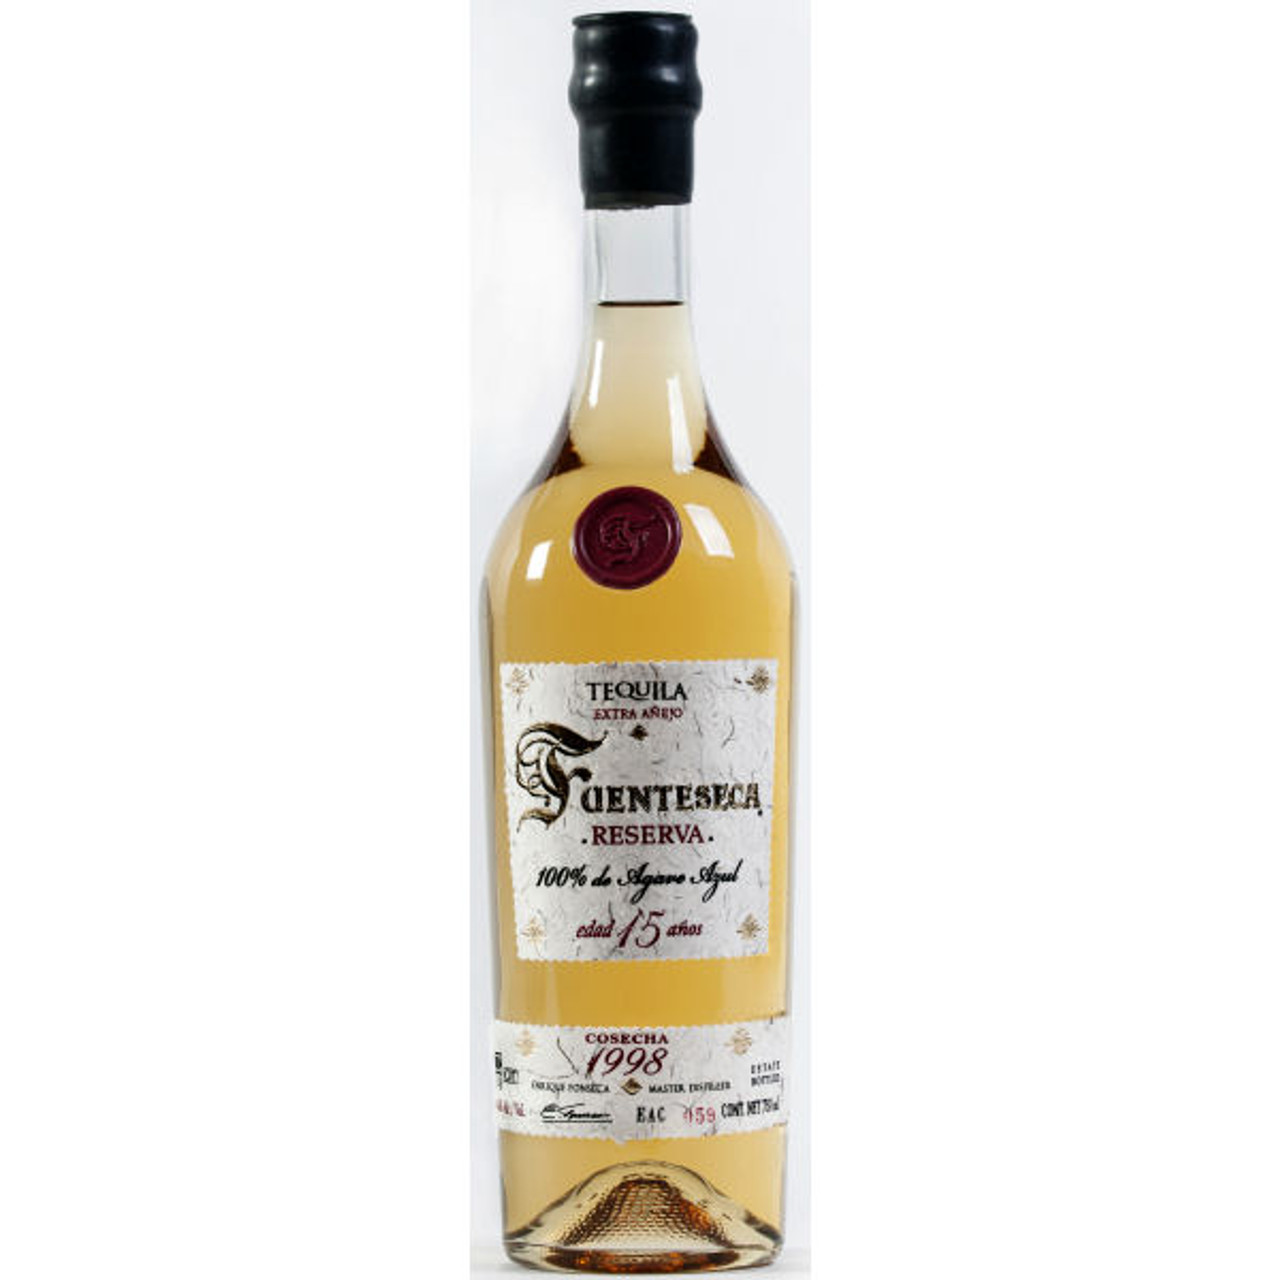 Fuenteseca Reserva Extra Anejo 1998 15 Year Old Tequila 750ml